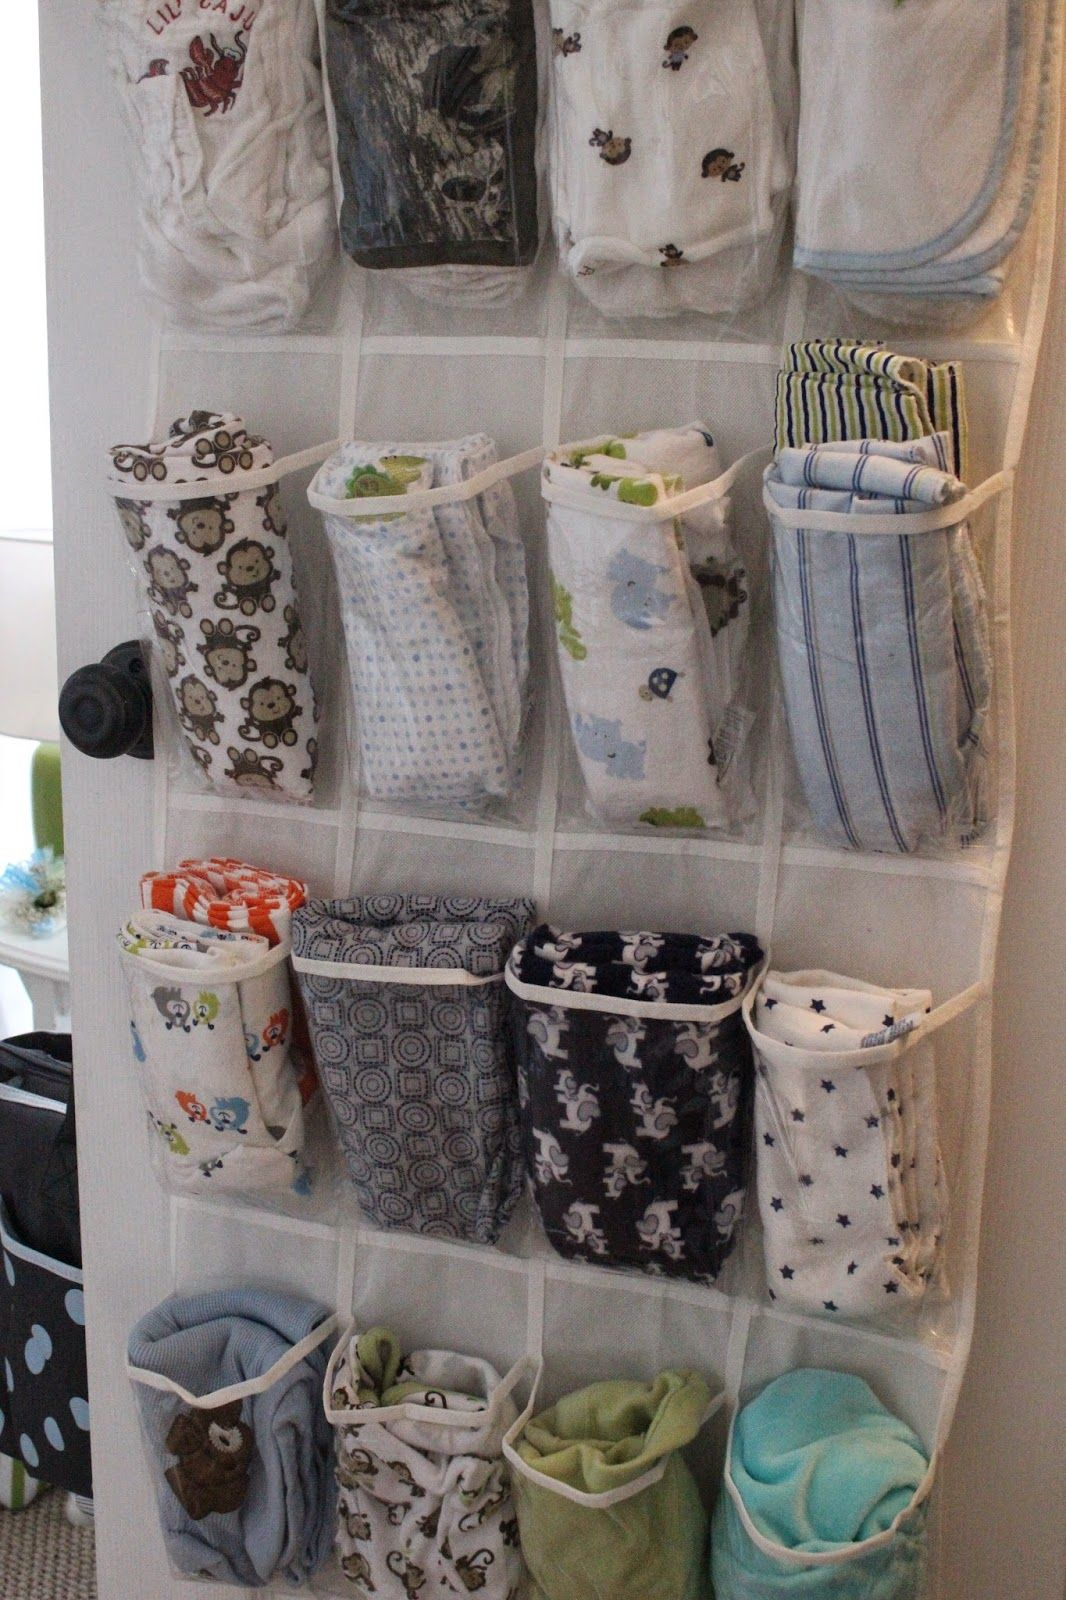 Superieur Store Baby Blankets In A Hanging Shoe Storage... Brilliant!